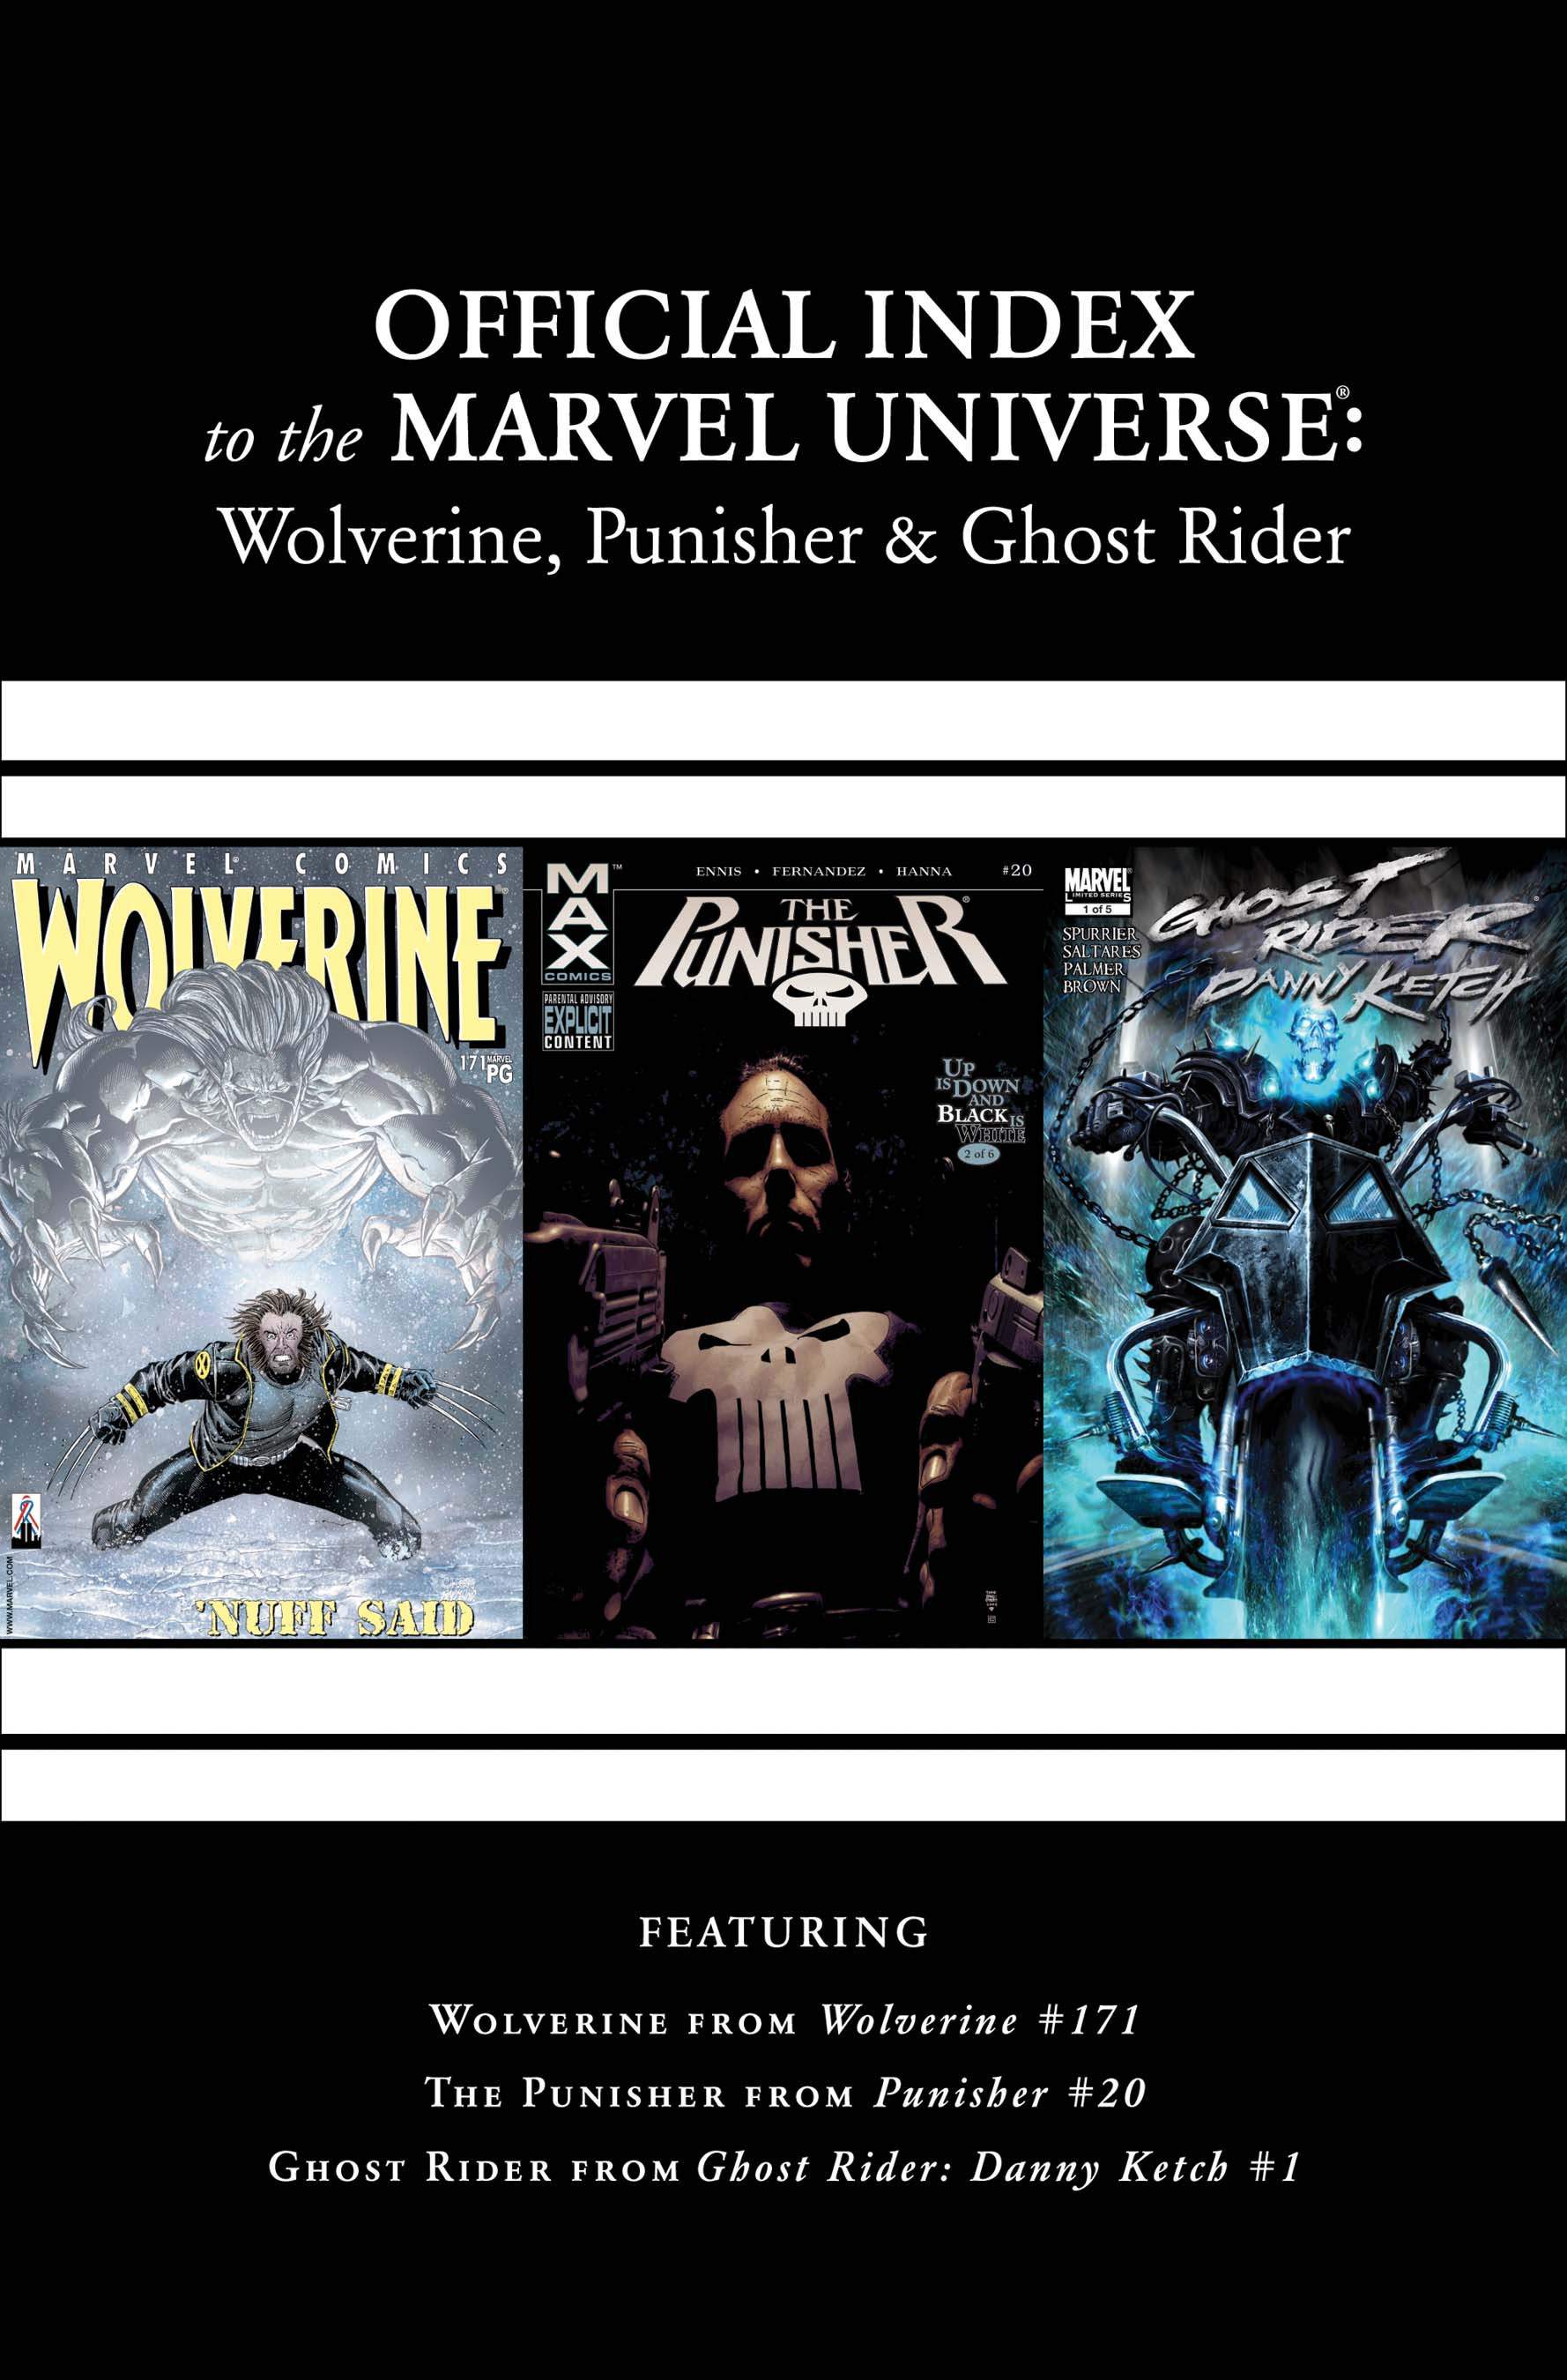 Wolverine, Punisher & Ghost Rider: Official Index to the Marvel Universe (2011) #6